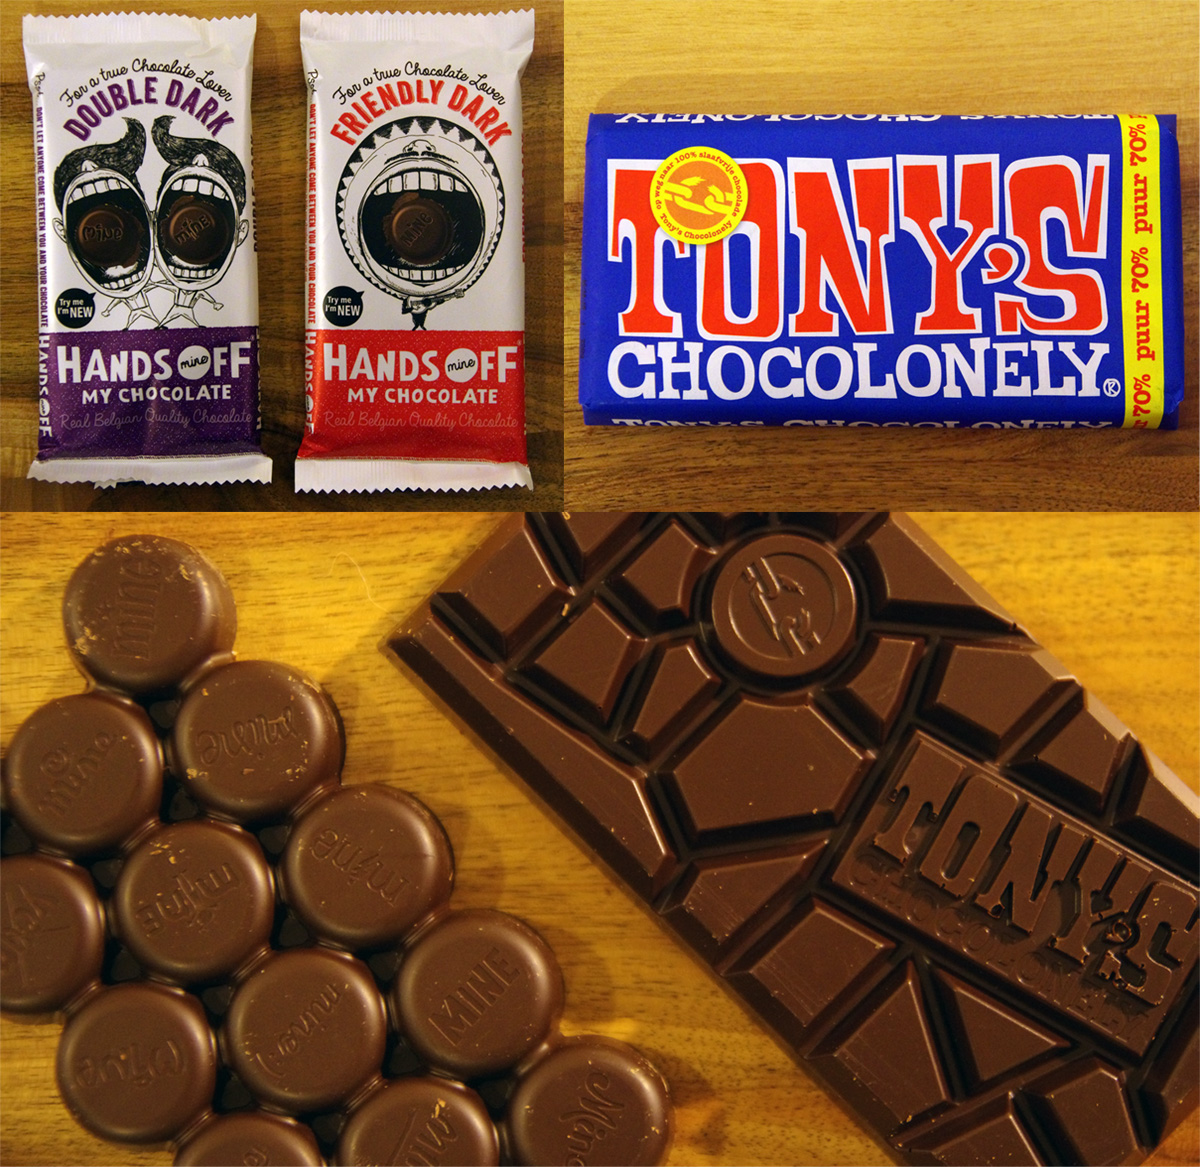 Hands Off My Chocolate and Tony's Chocolonely